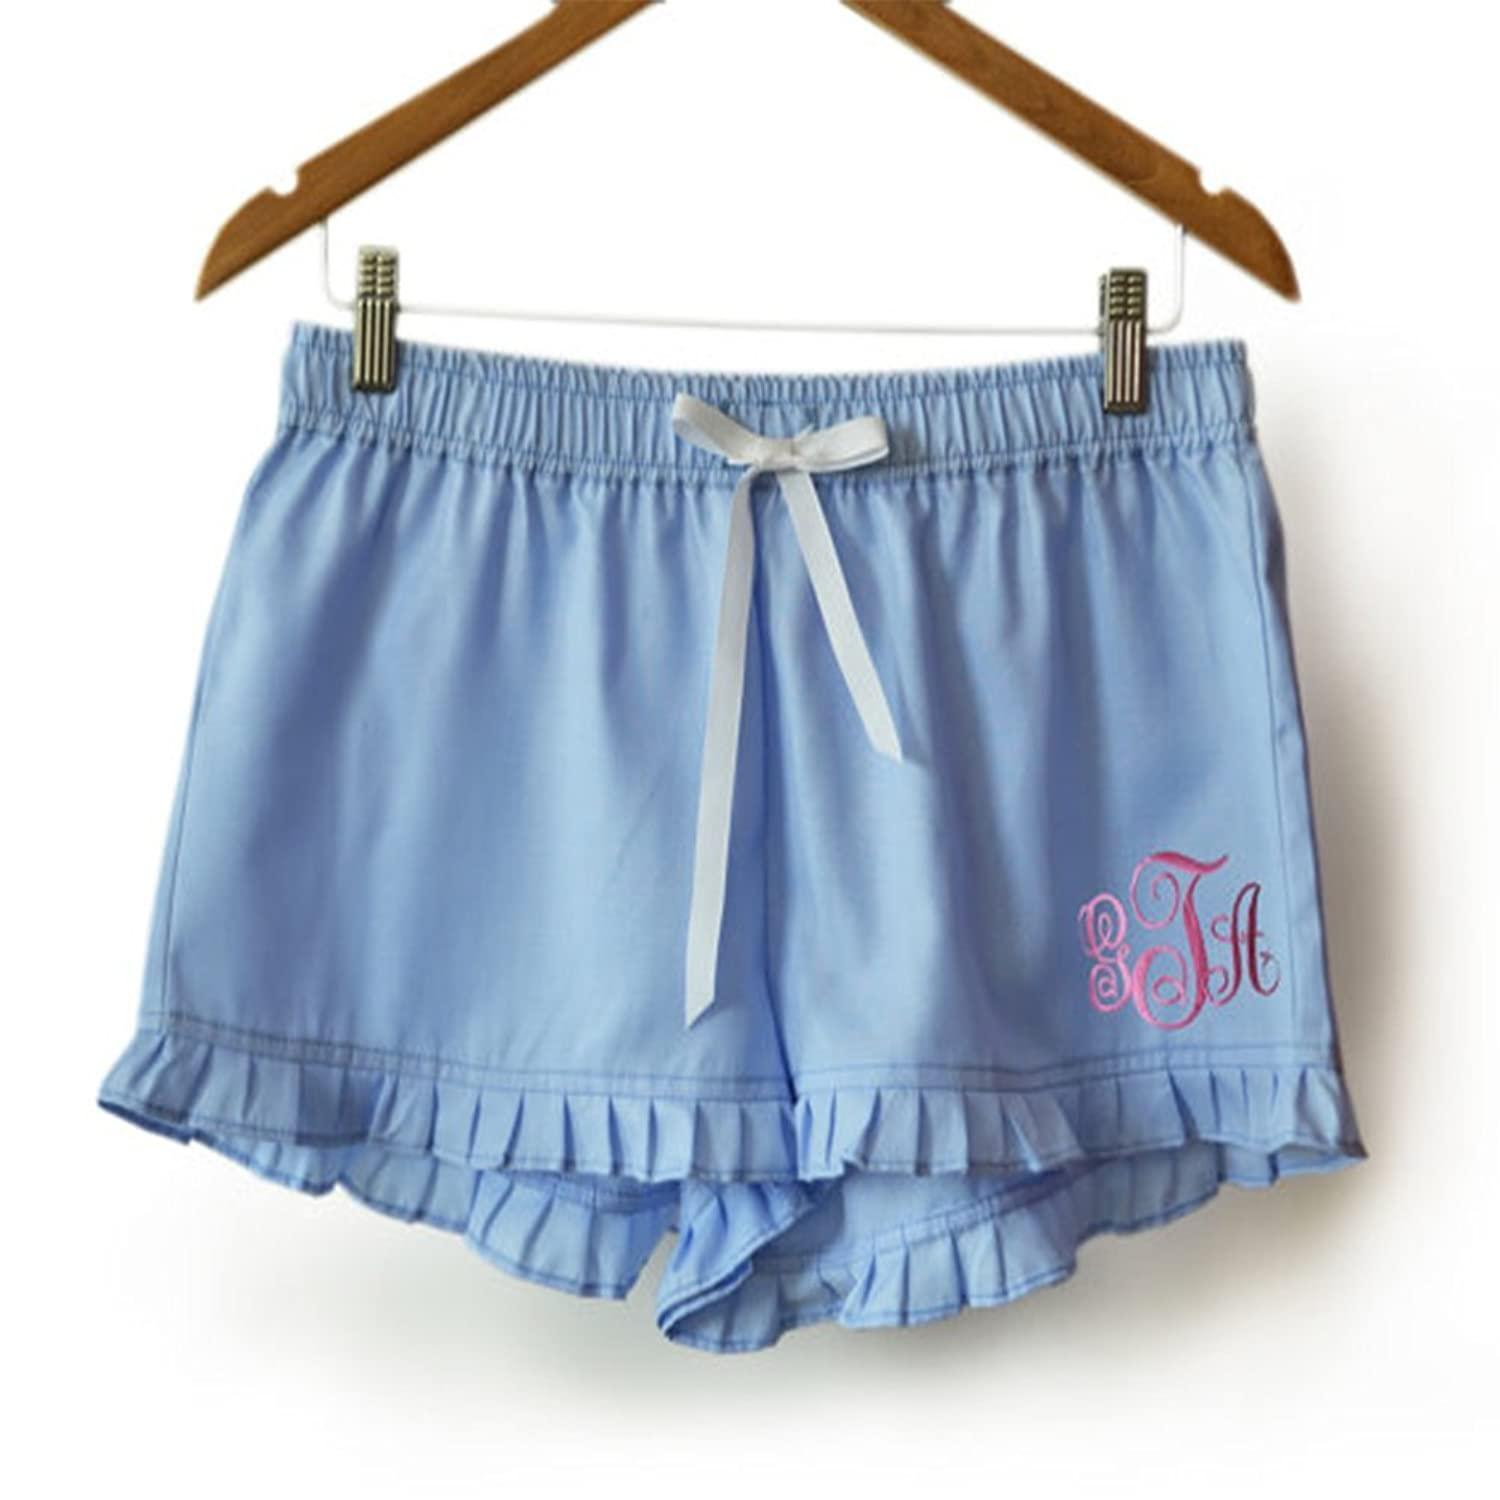 Amore Beaute Handcrafted Customizable Blue Cotton Monogrammed Shorts